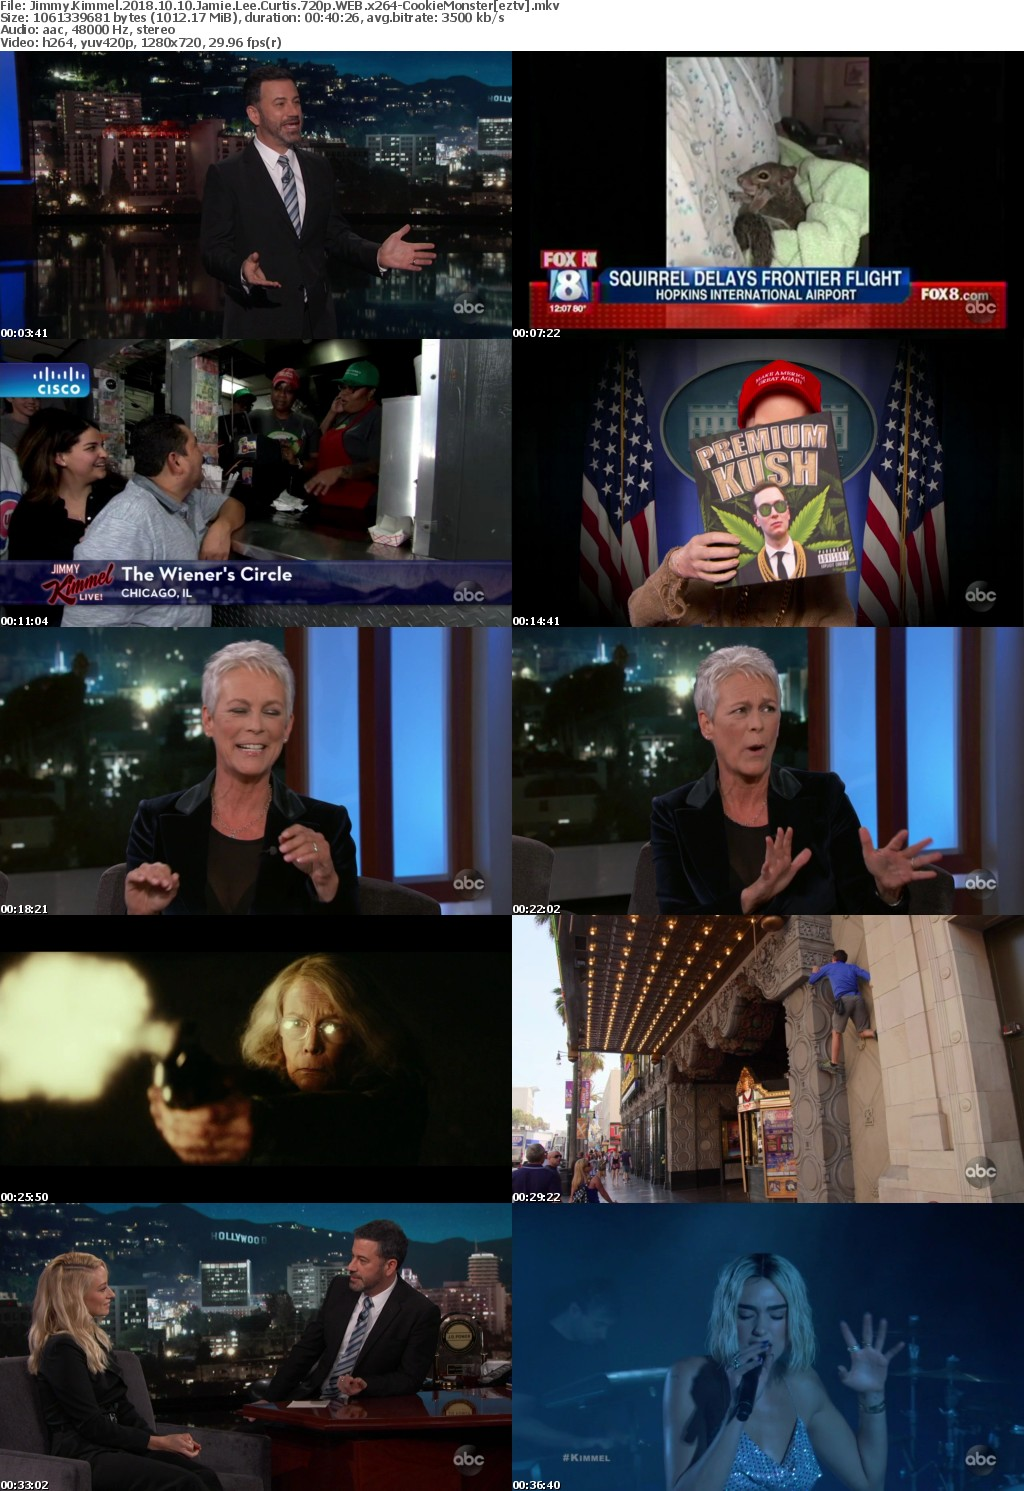 Jimmy Kimmel 2018 10 10 Jamie Lee Curtis 720p WEB x264-CookieMonster